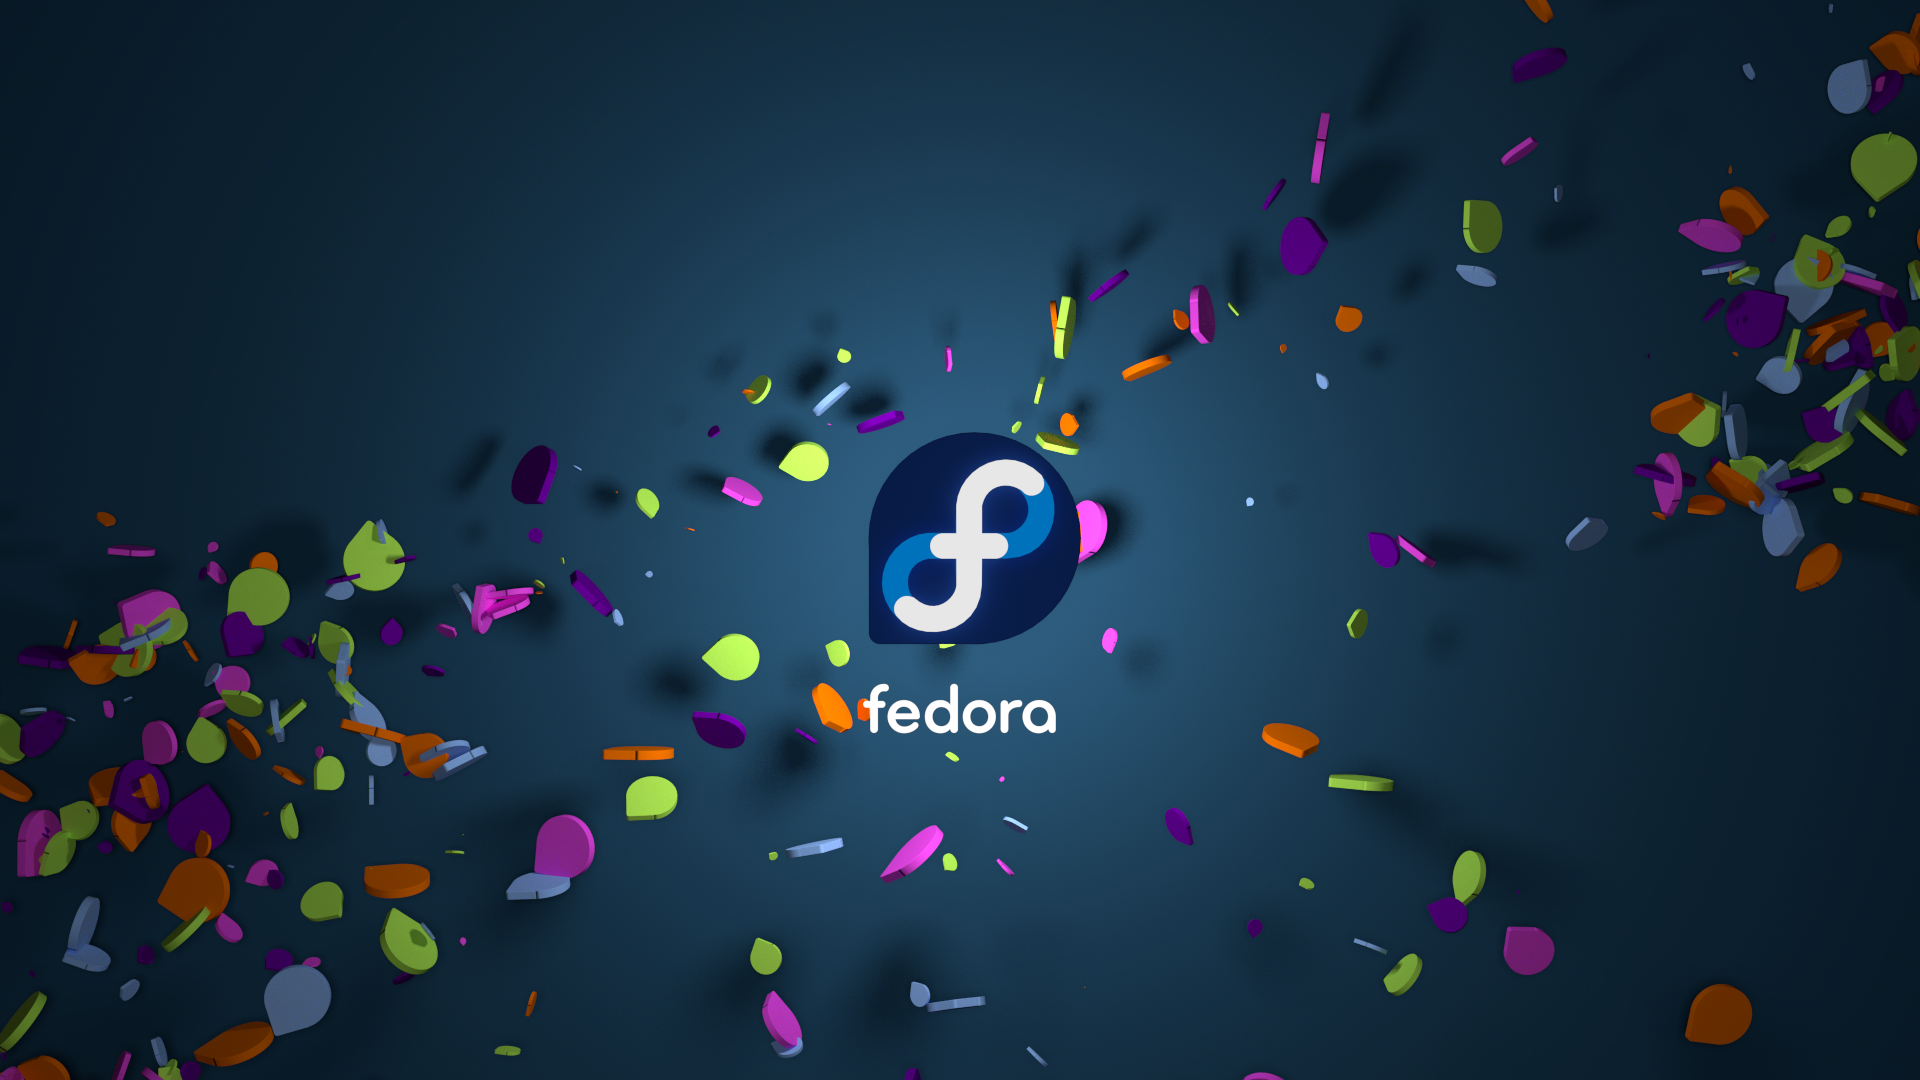 Fedora (07.15.14, 1.86 Mb) - BsnSCB Gallery